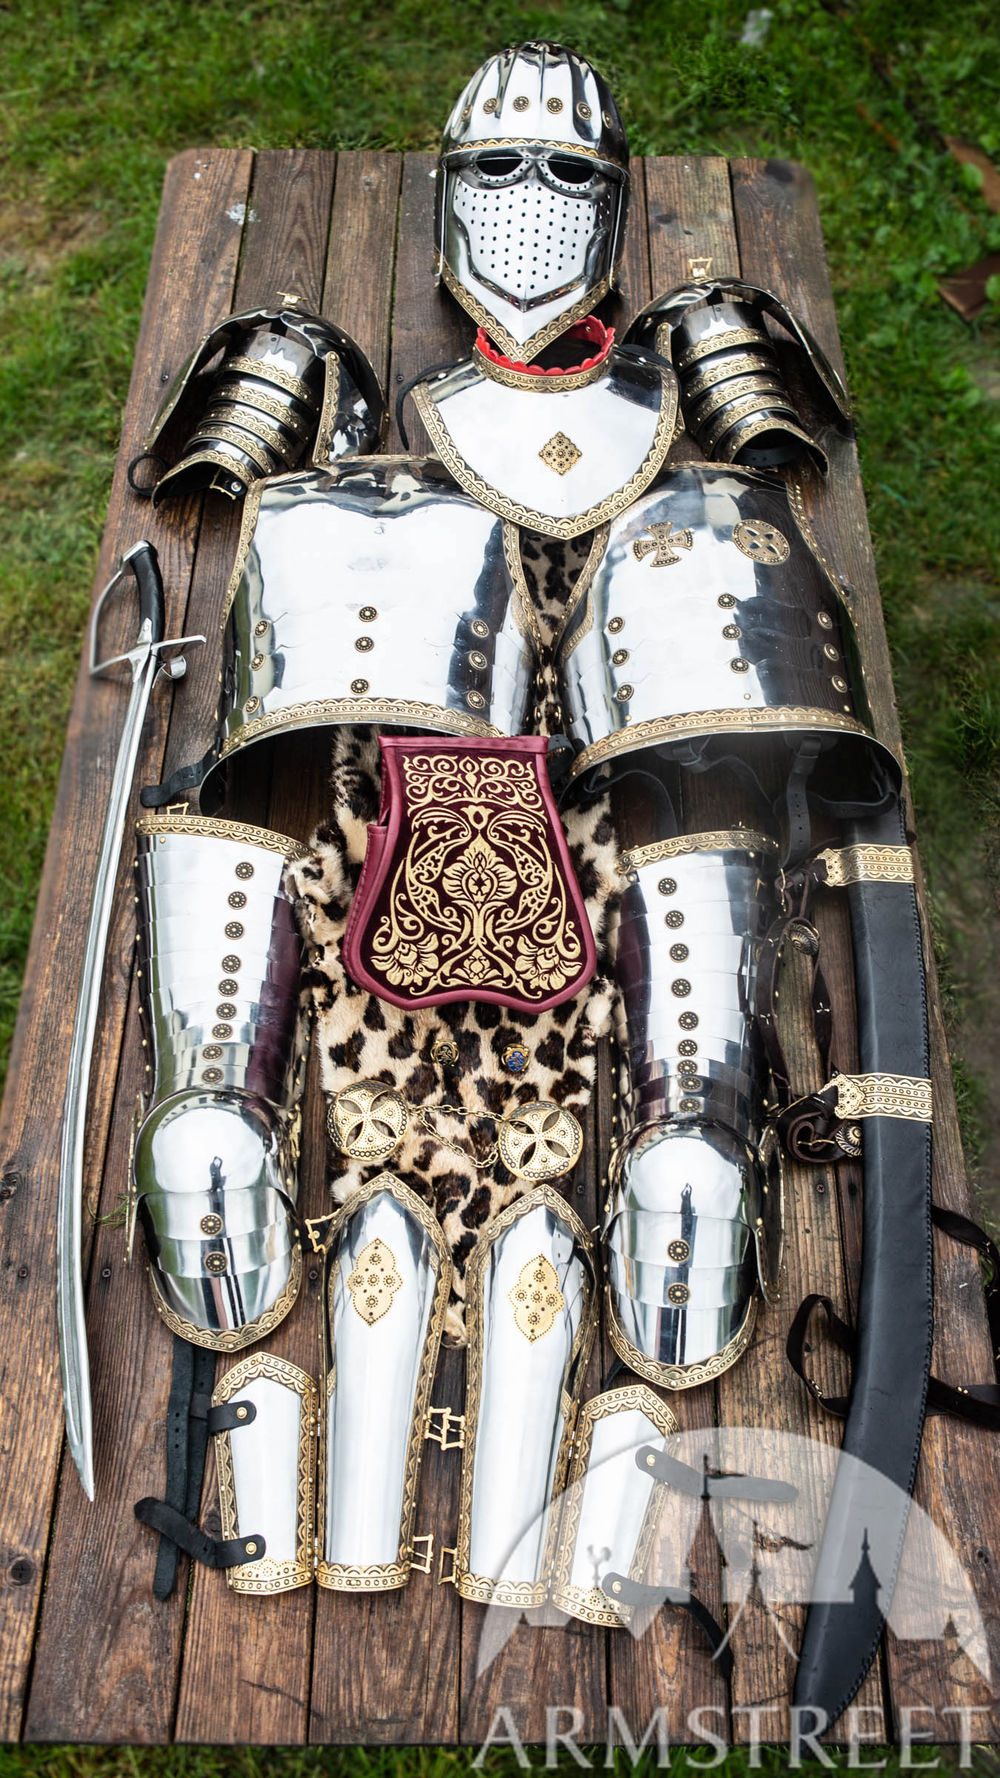 Polish Hussar Stainless Steel with Brass Accents Full Armor Set